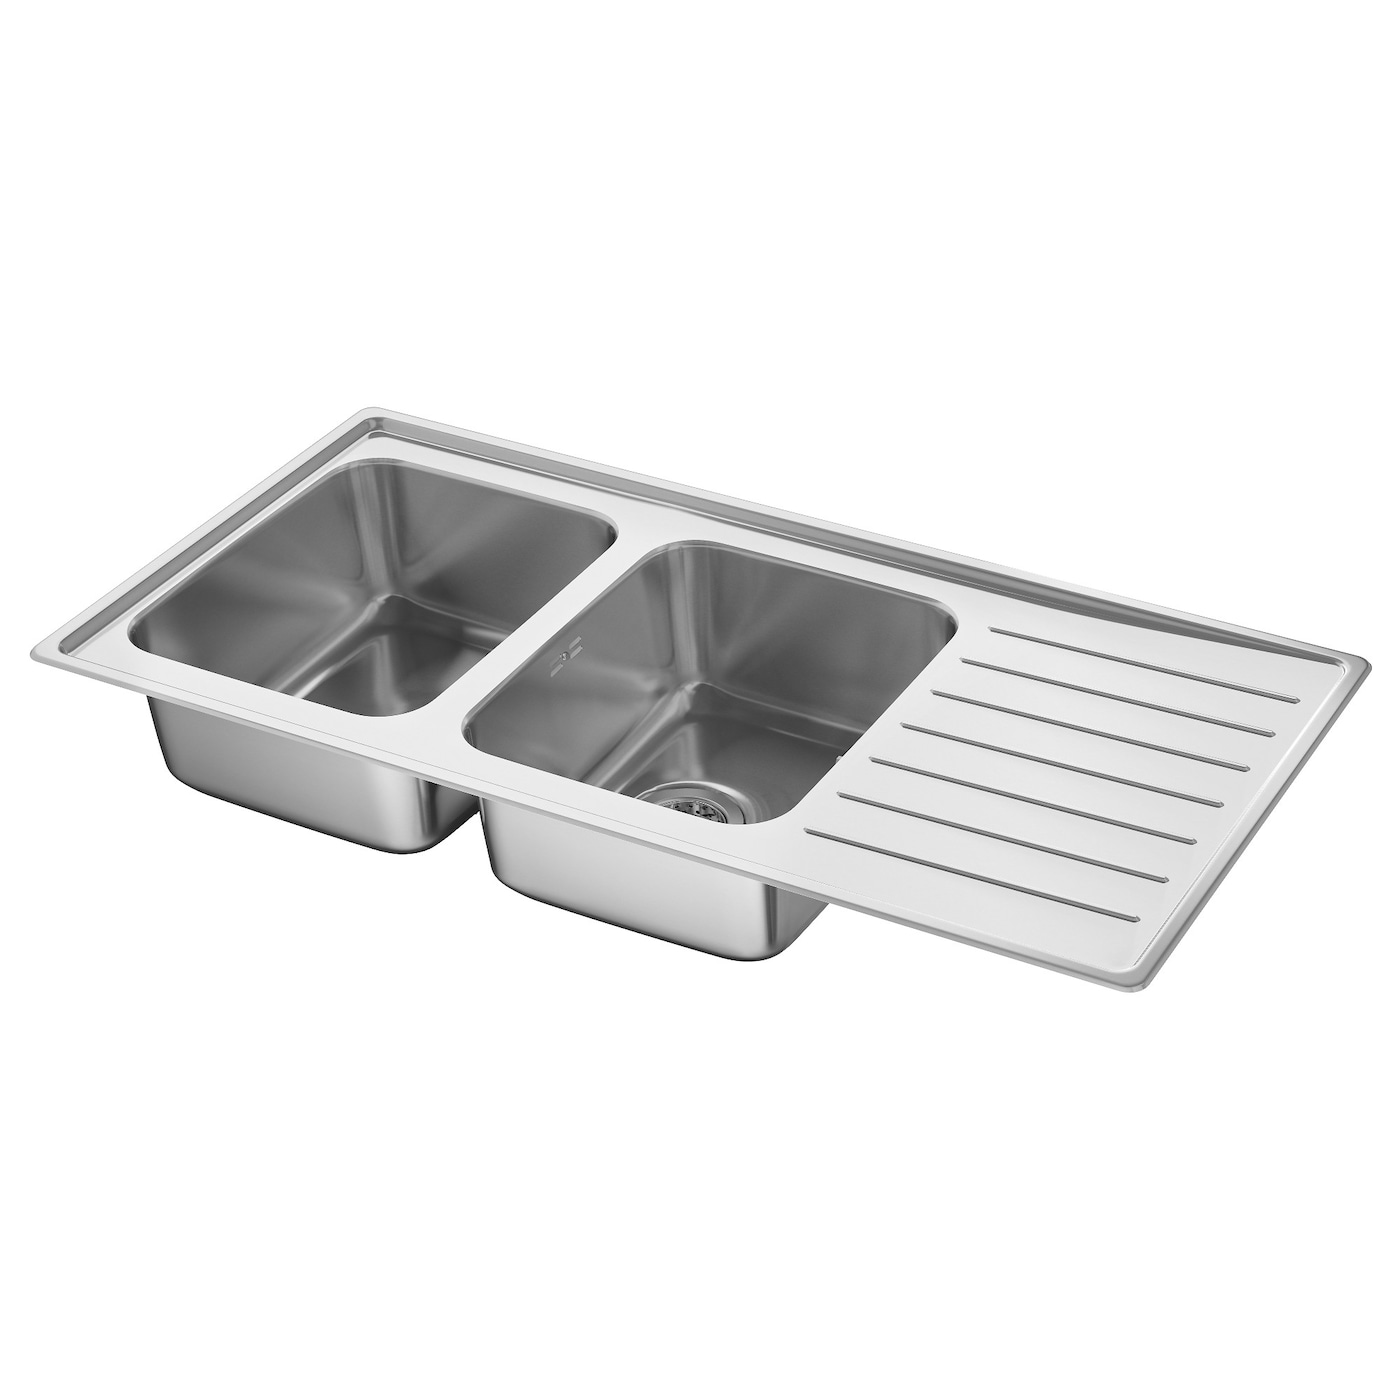 vattudalen inset sink 2 bowls with drainboard stainless steel